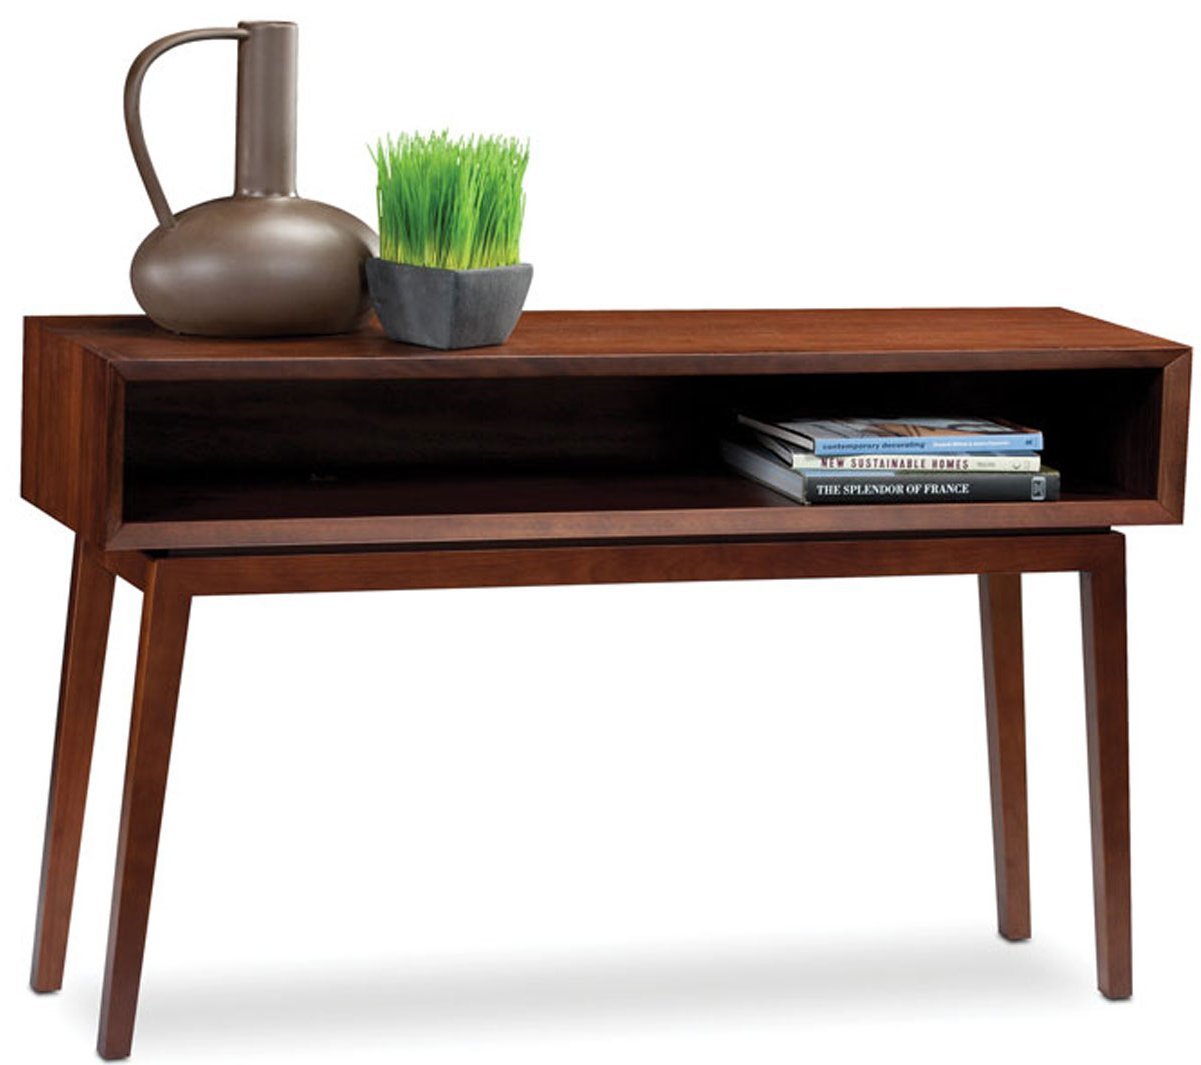 Charming BDI Retro Console Table In Chocolate Walnut Main Image